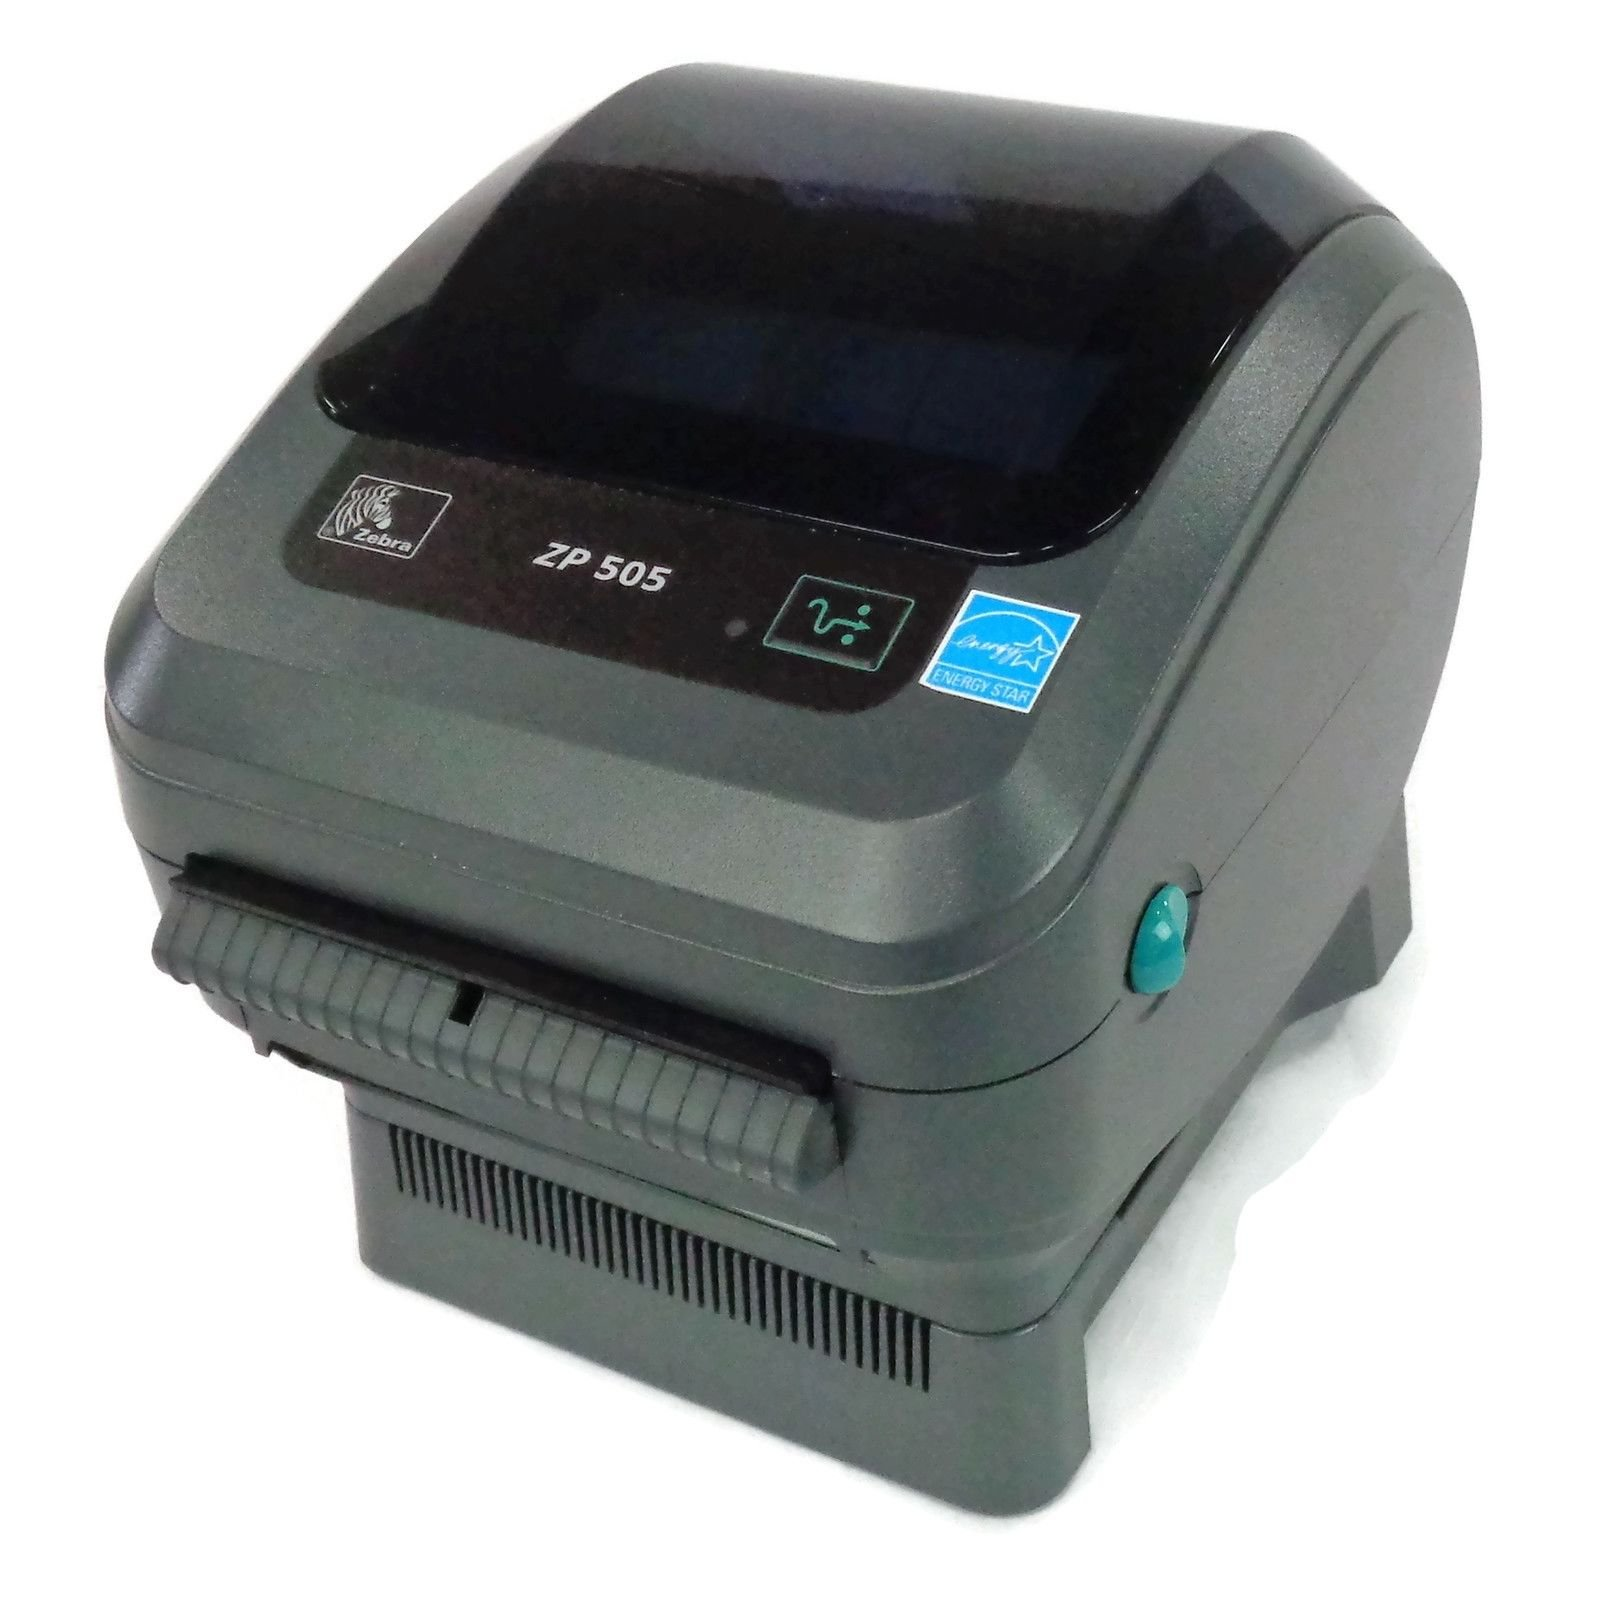 Zebra ZP 505 Thermal Printer by Zebra Technologies